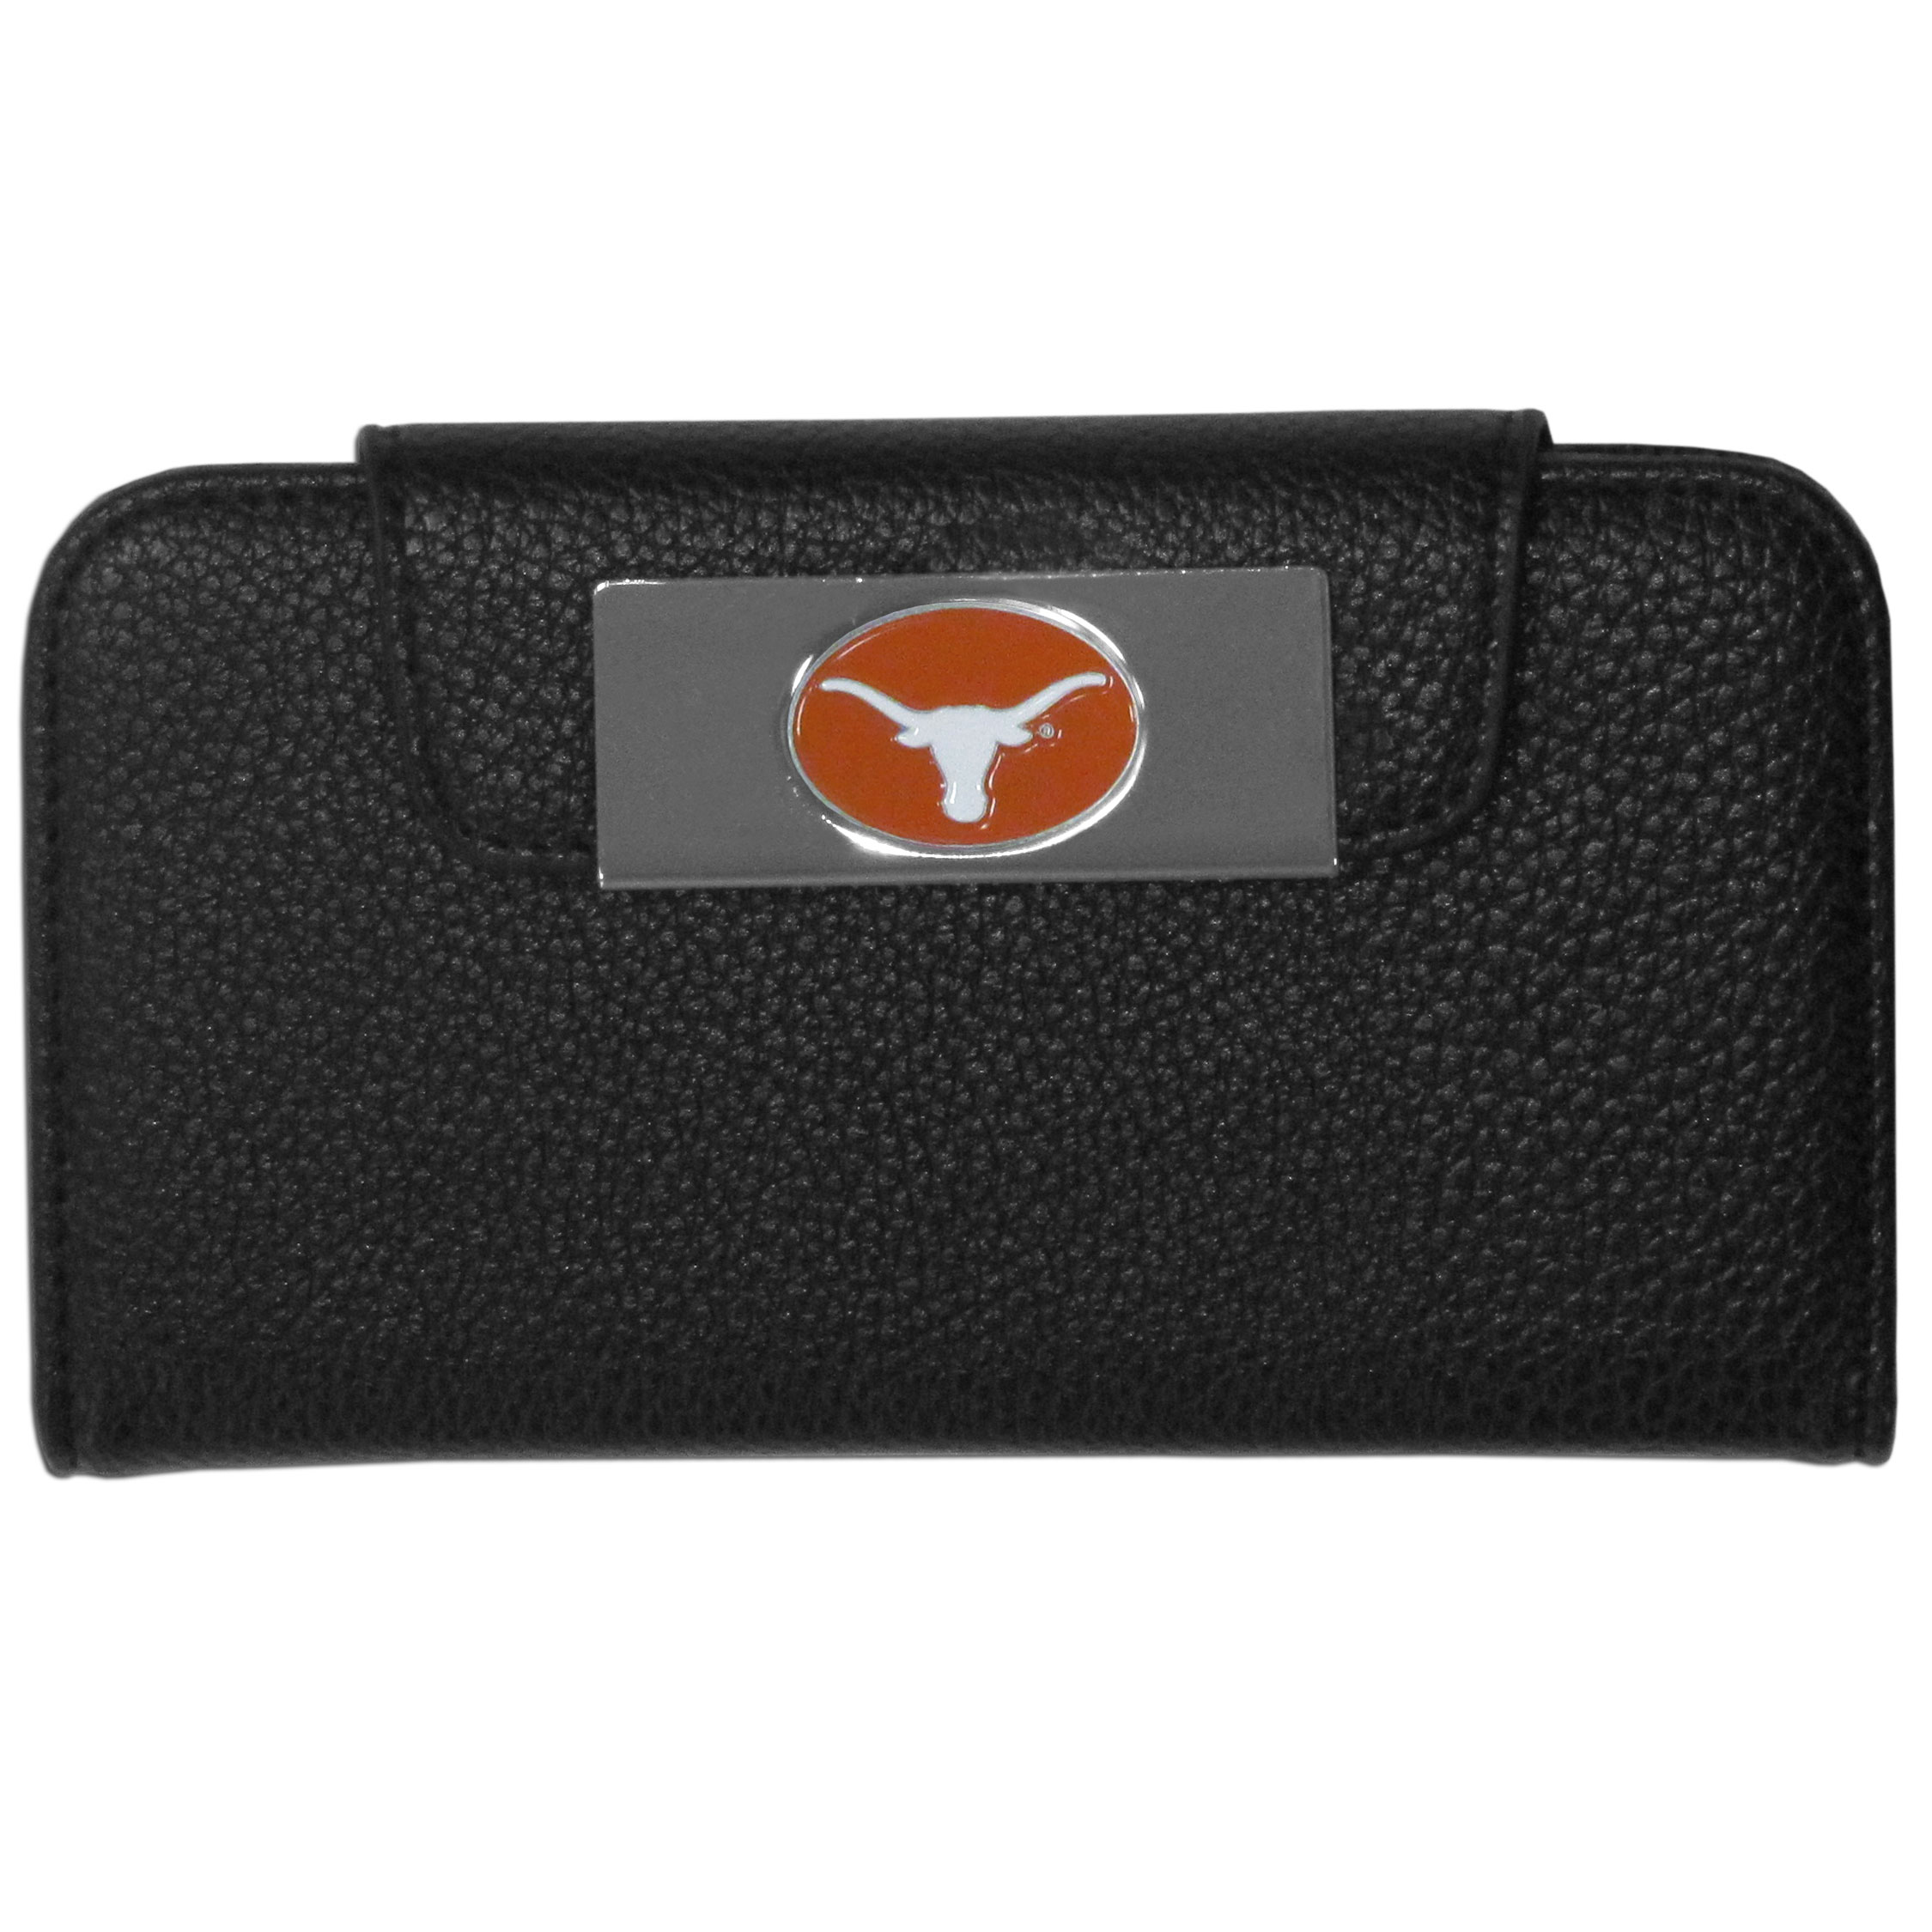 Texas Longhorns Samsung Galaxy S4 Wallet Case - This new & wildly popular case is ideal for those who like to travel light! The stylish case has an inner hard shell that securely holds your phone while allowing complete access to the phone's functionality. The flip cover has slots for credit cards, business cards and identification. The magnetic flip cover has a metal Texas Longhorns emblem on a high polish chrome backing. Fits the Samsung Galaxy S4